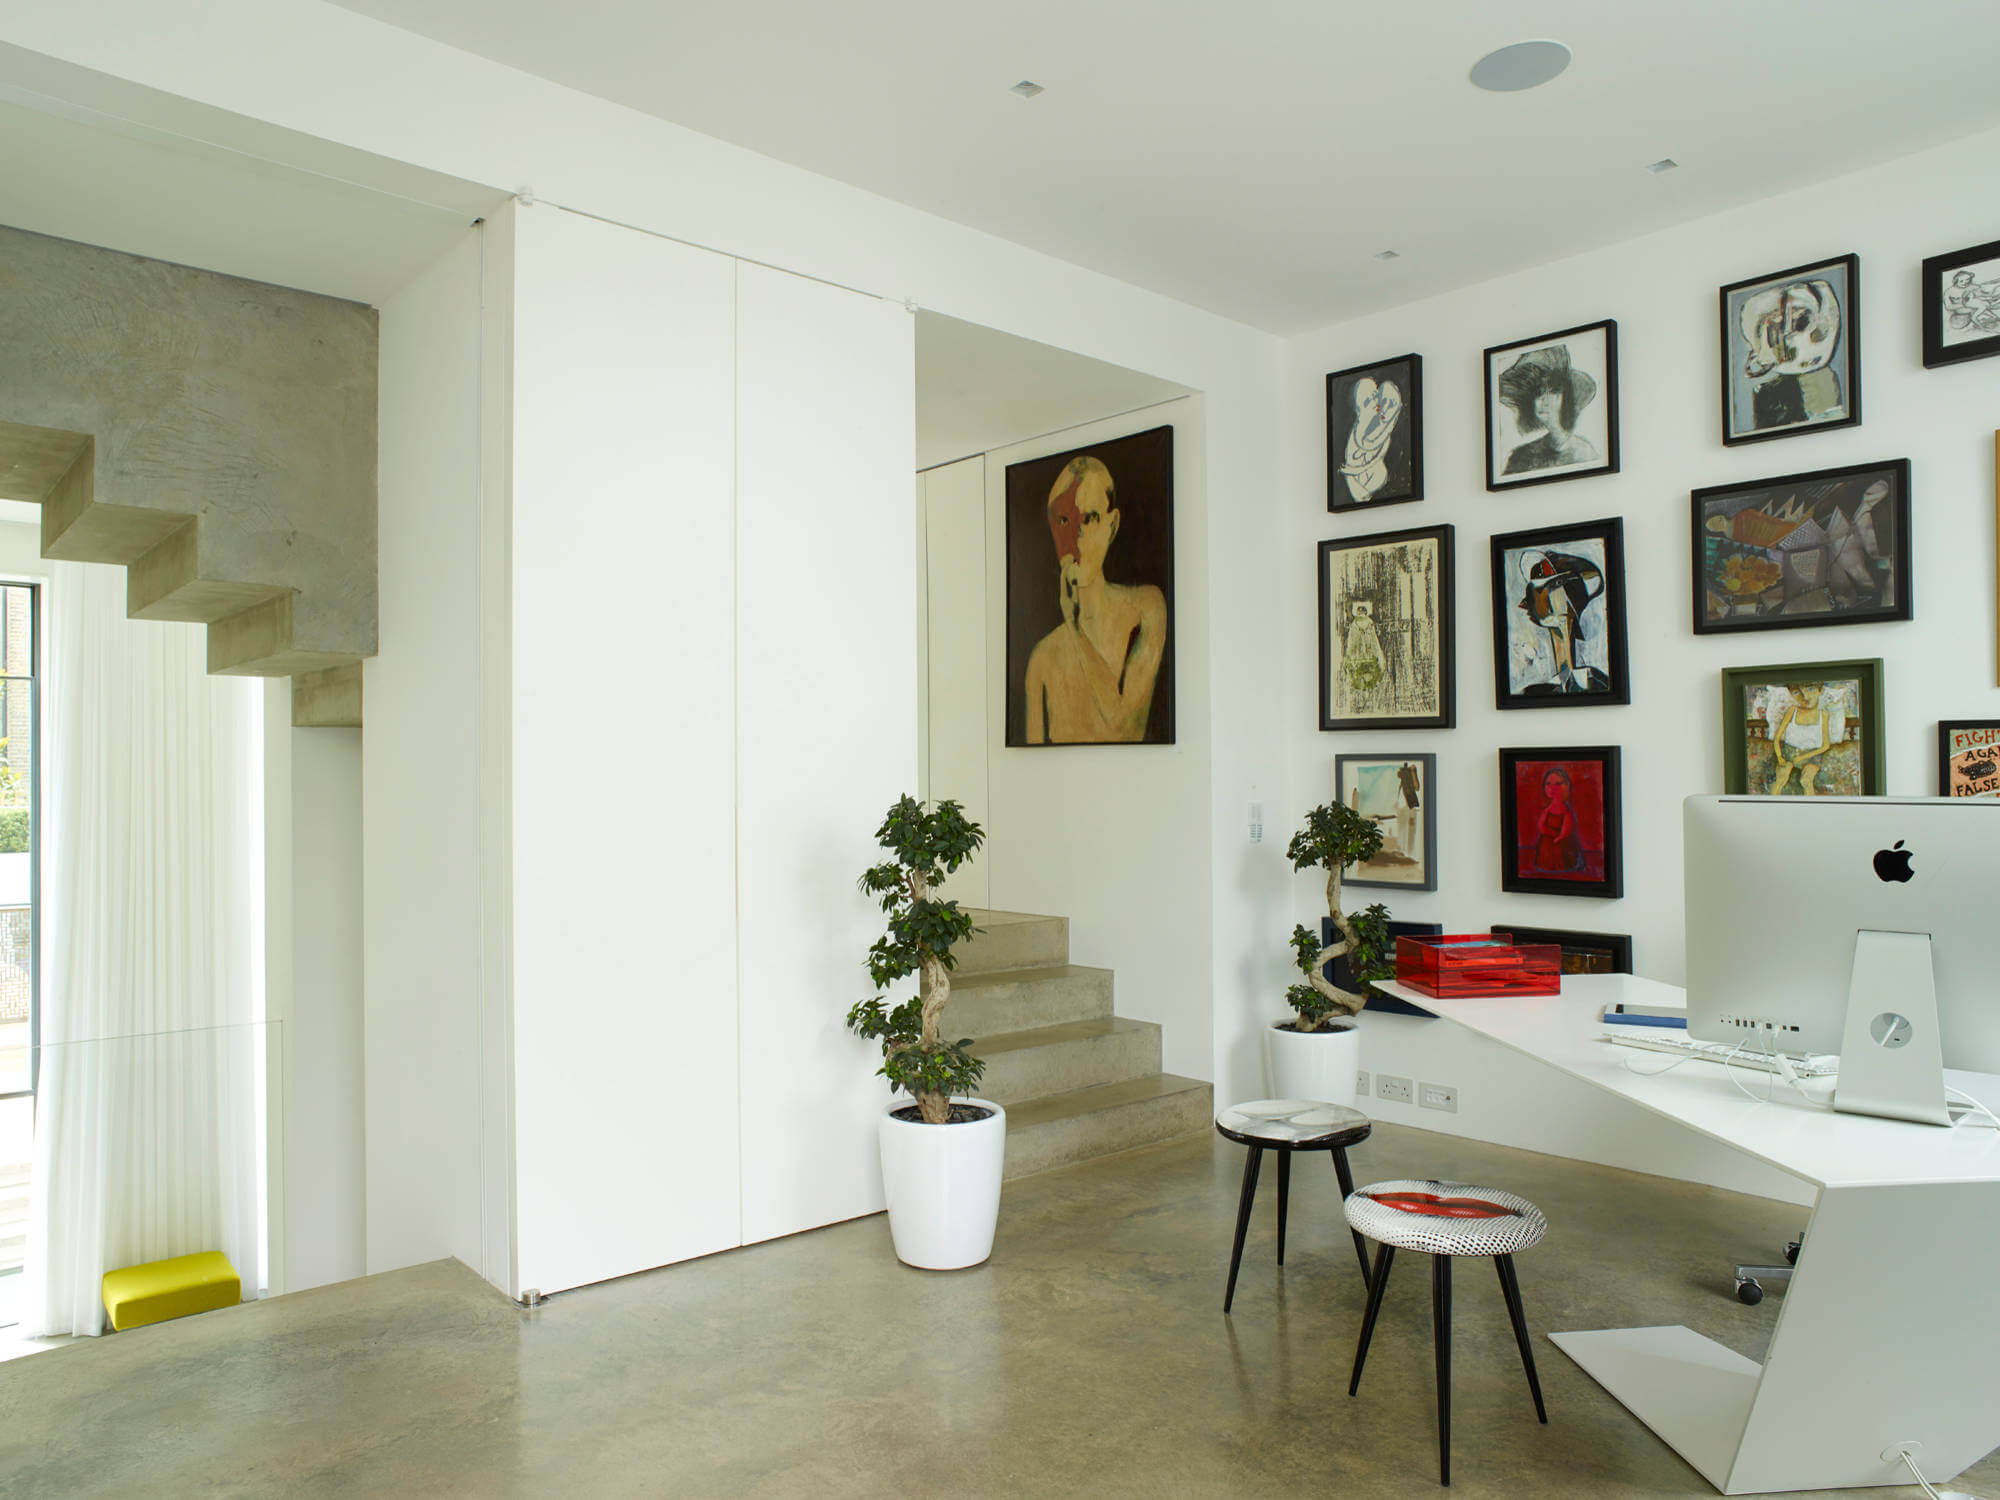 chelsea-house-stephen-fletcher-architects-02